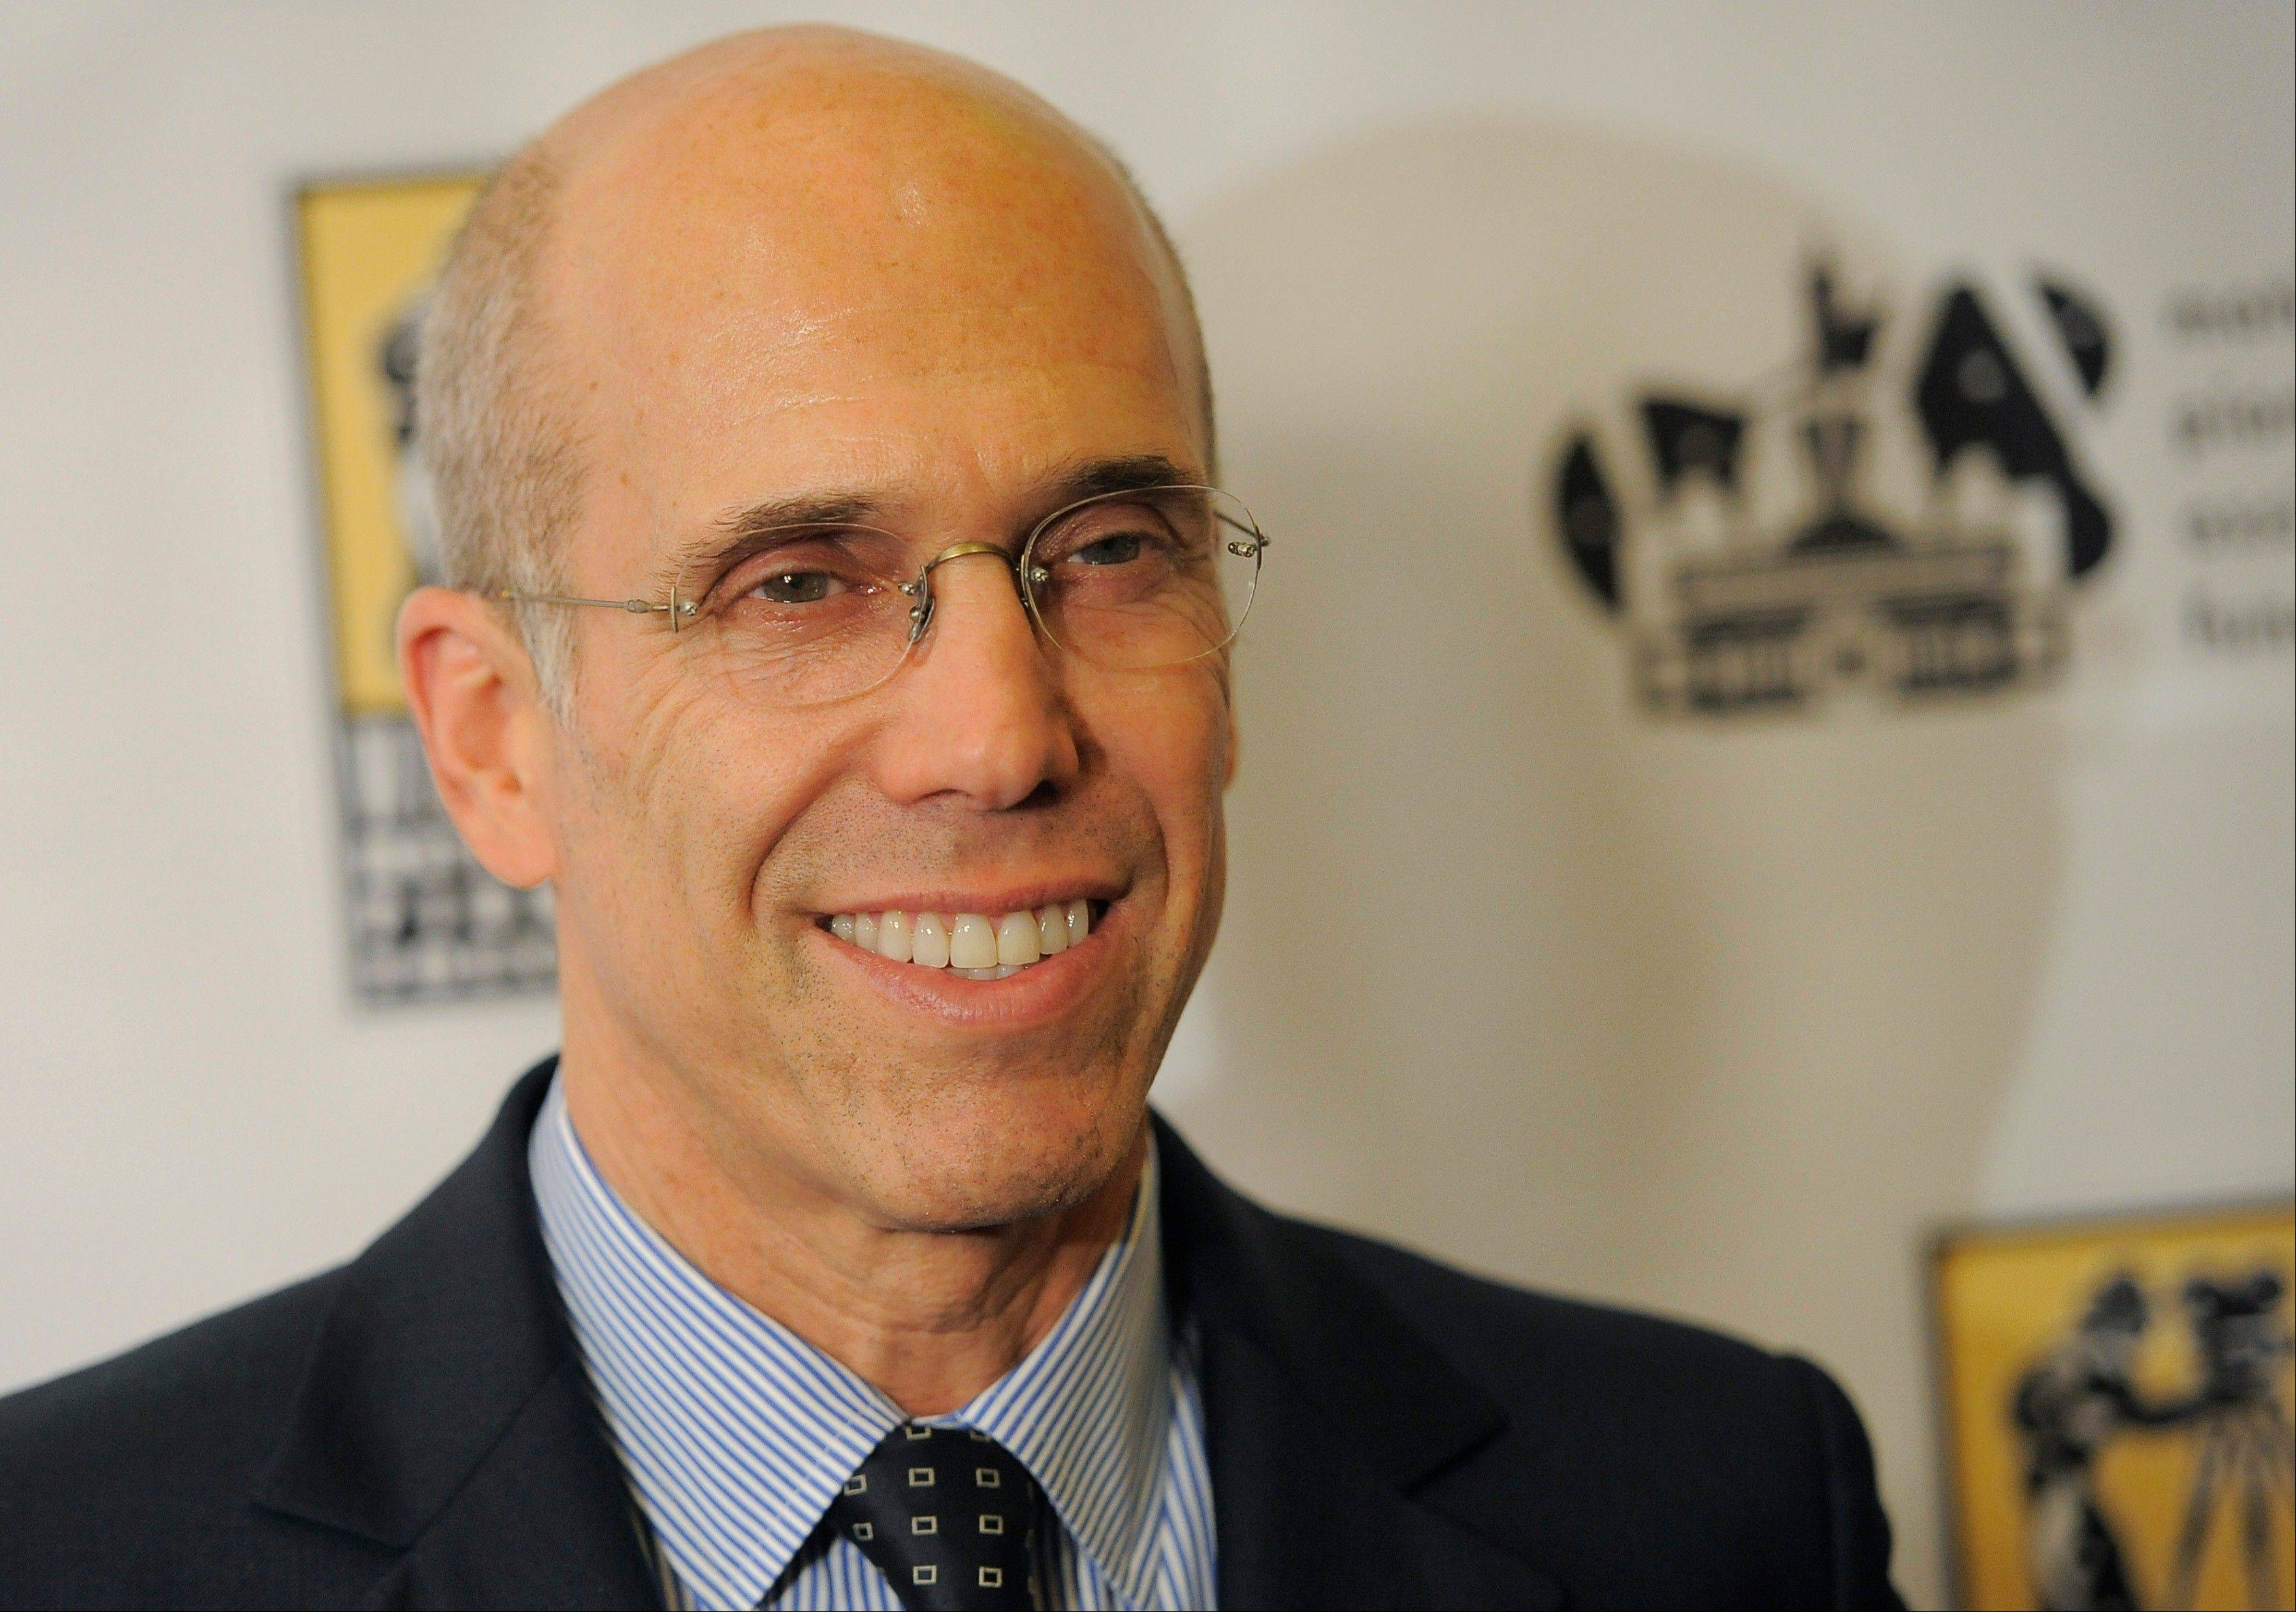 DreamWorks Animation CEO Jeffrey Katzenberg will be honored with the Jean Hersholt Humanitarian Award at the Academy of Motion Picture Arts and Sciences' 4th annual Governors Awards dinner set for Dec. 1.